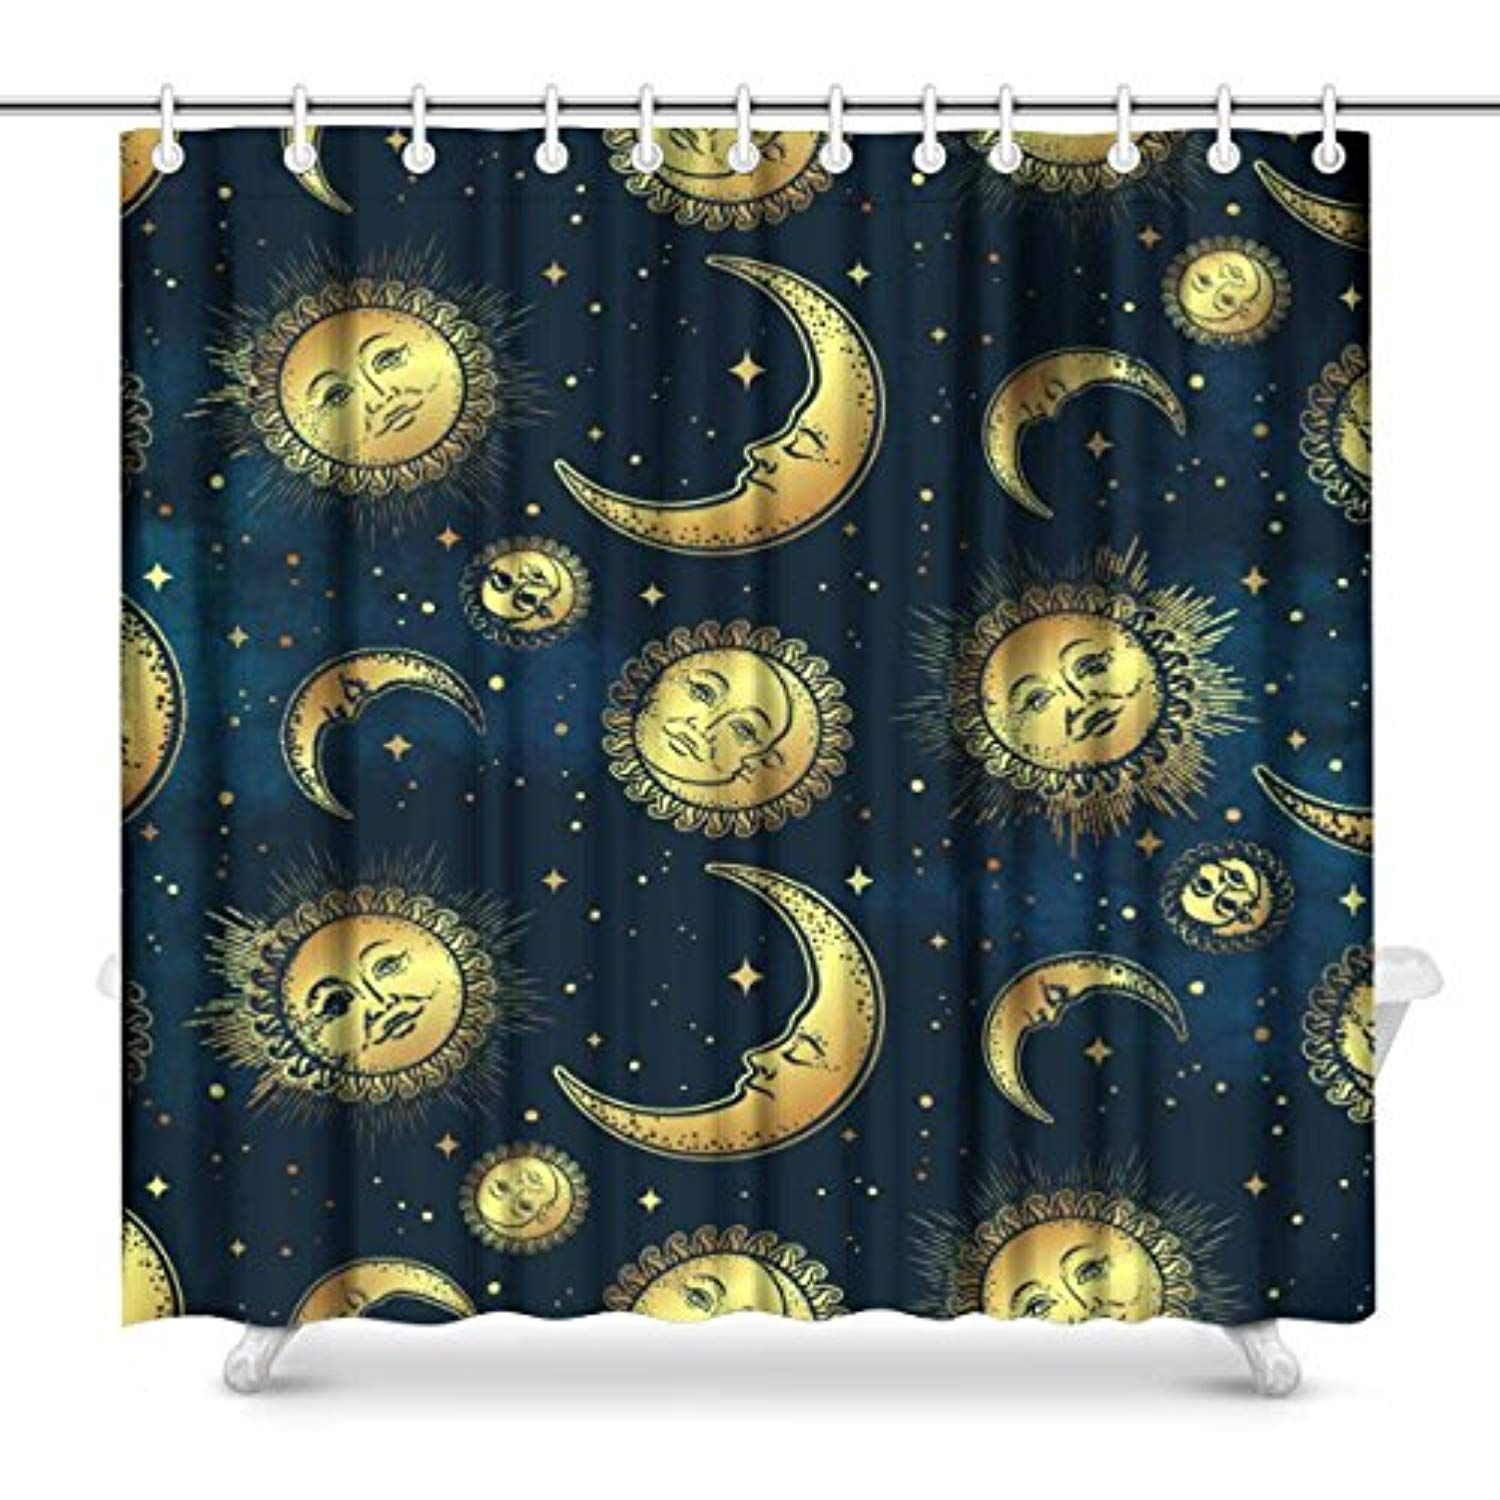 Interestprint Boho Celestial Bodies Gold Sun Moon And Stars Waterproof Polyester Fabric Shower Curtain Fabric Shower Curtains Bathroom Shower Curtains Gold Sun